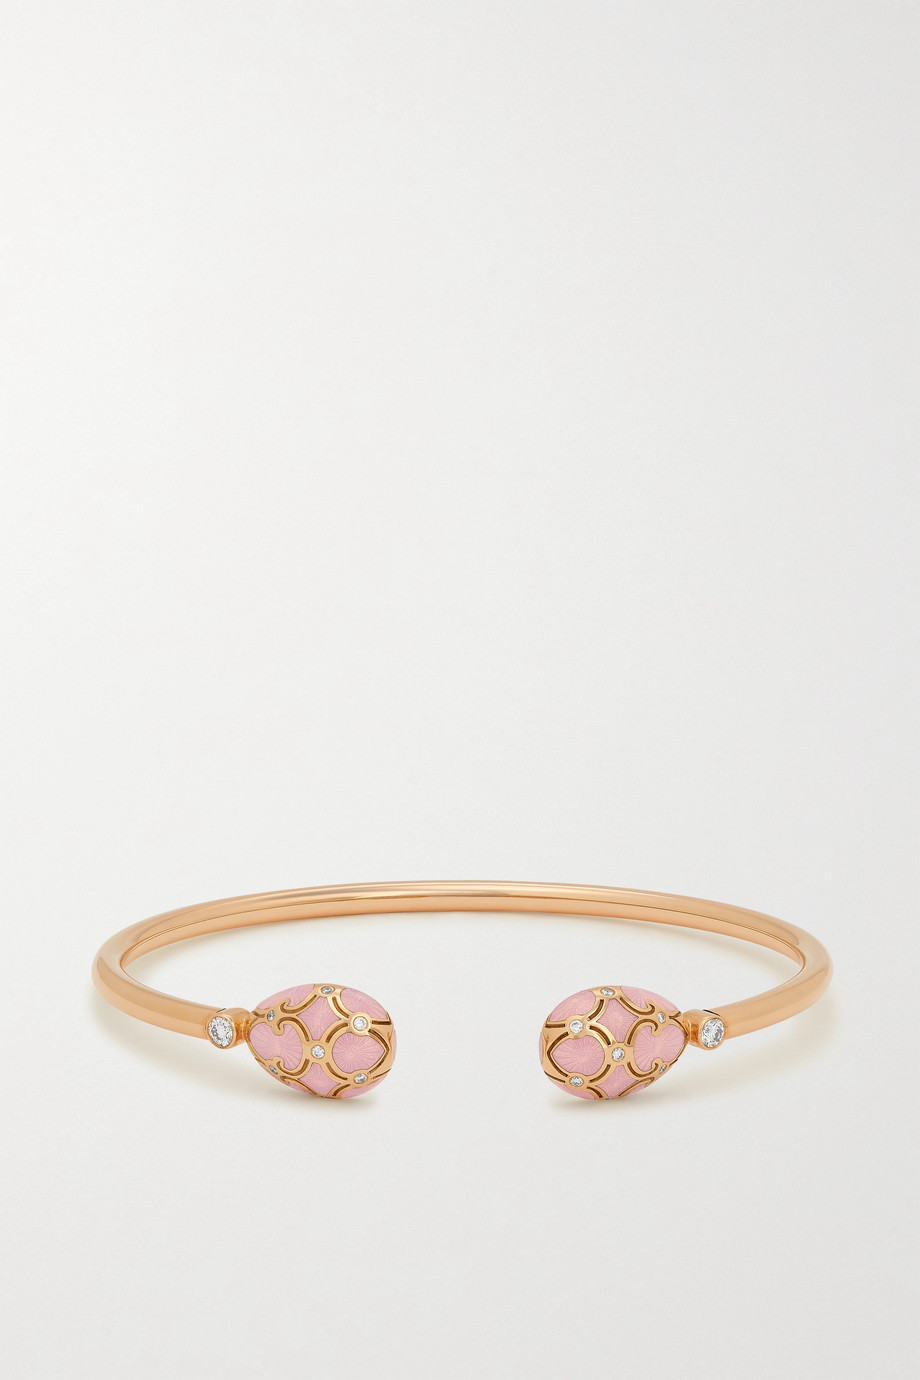 FABERGÉ Heritage 18-karat rose gold, enamel, diamond and ruby bangle